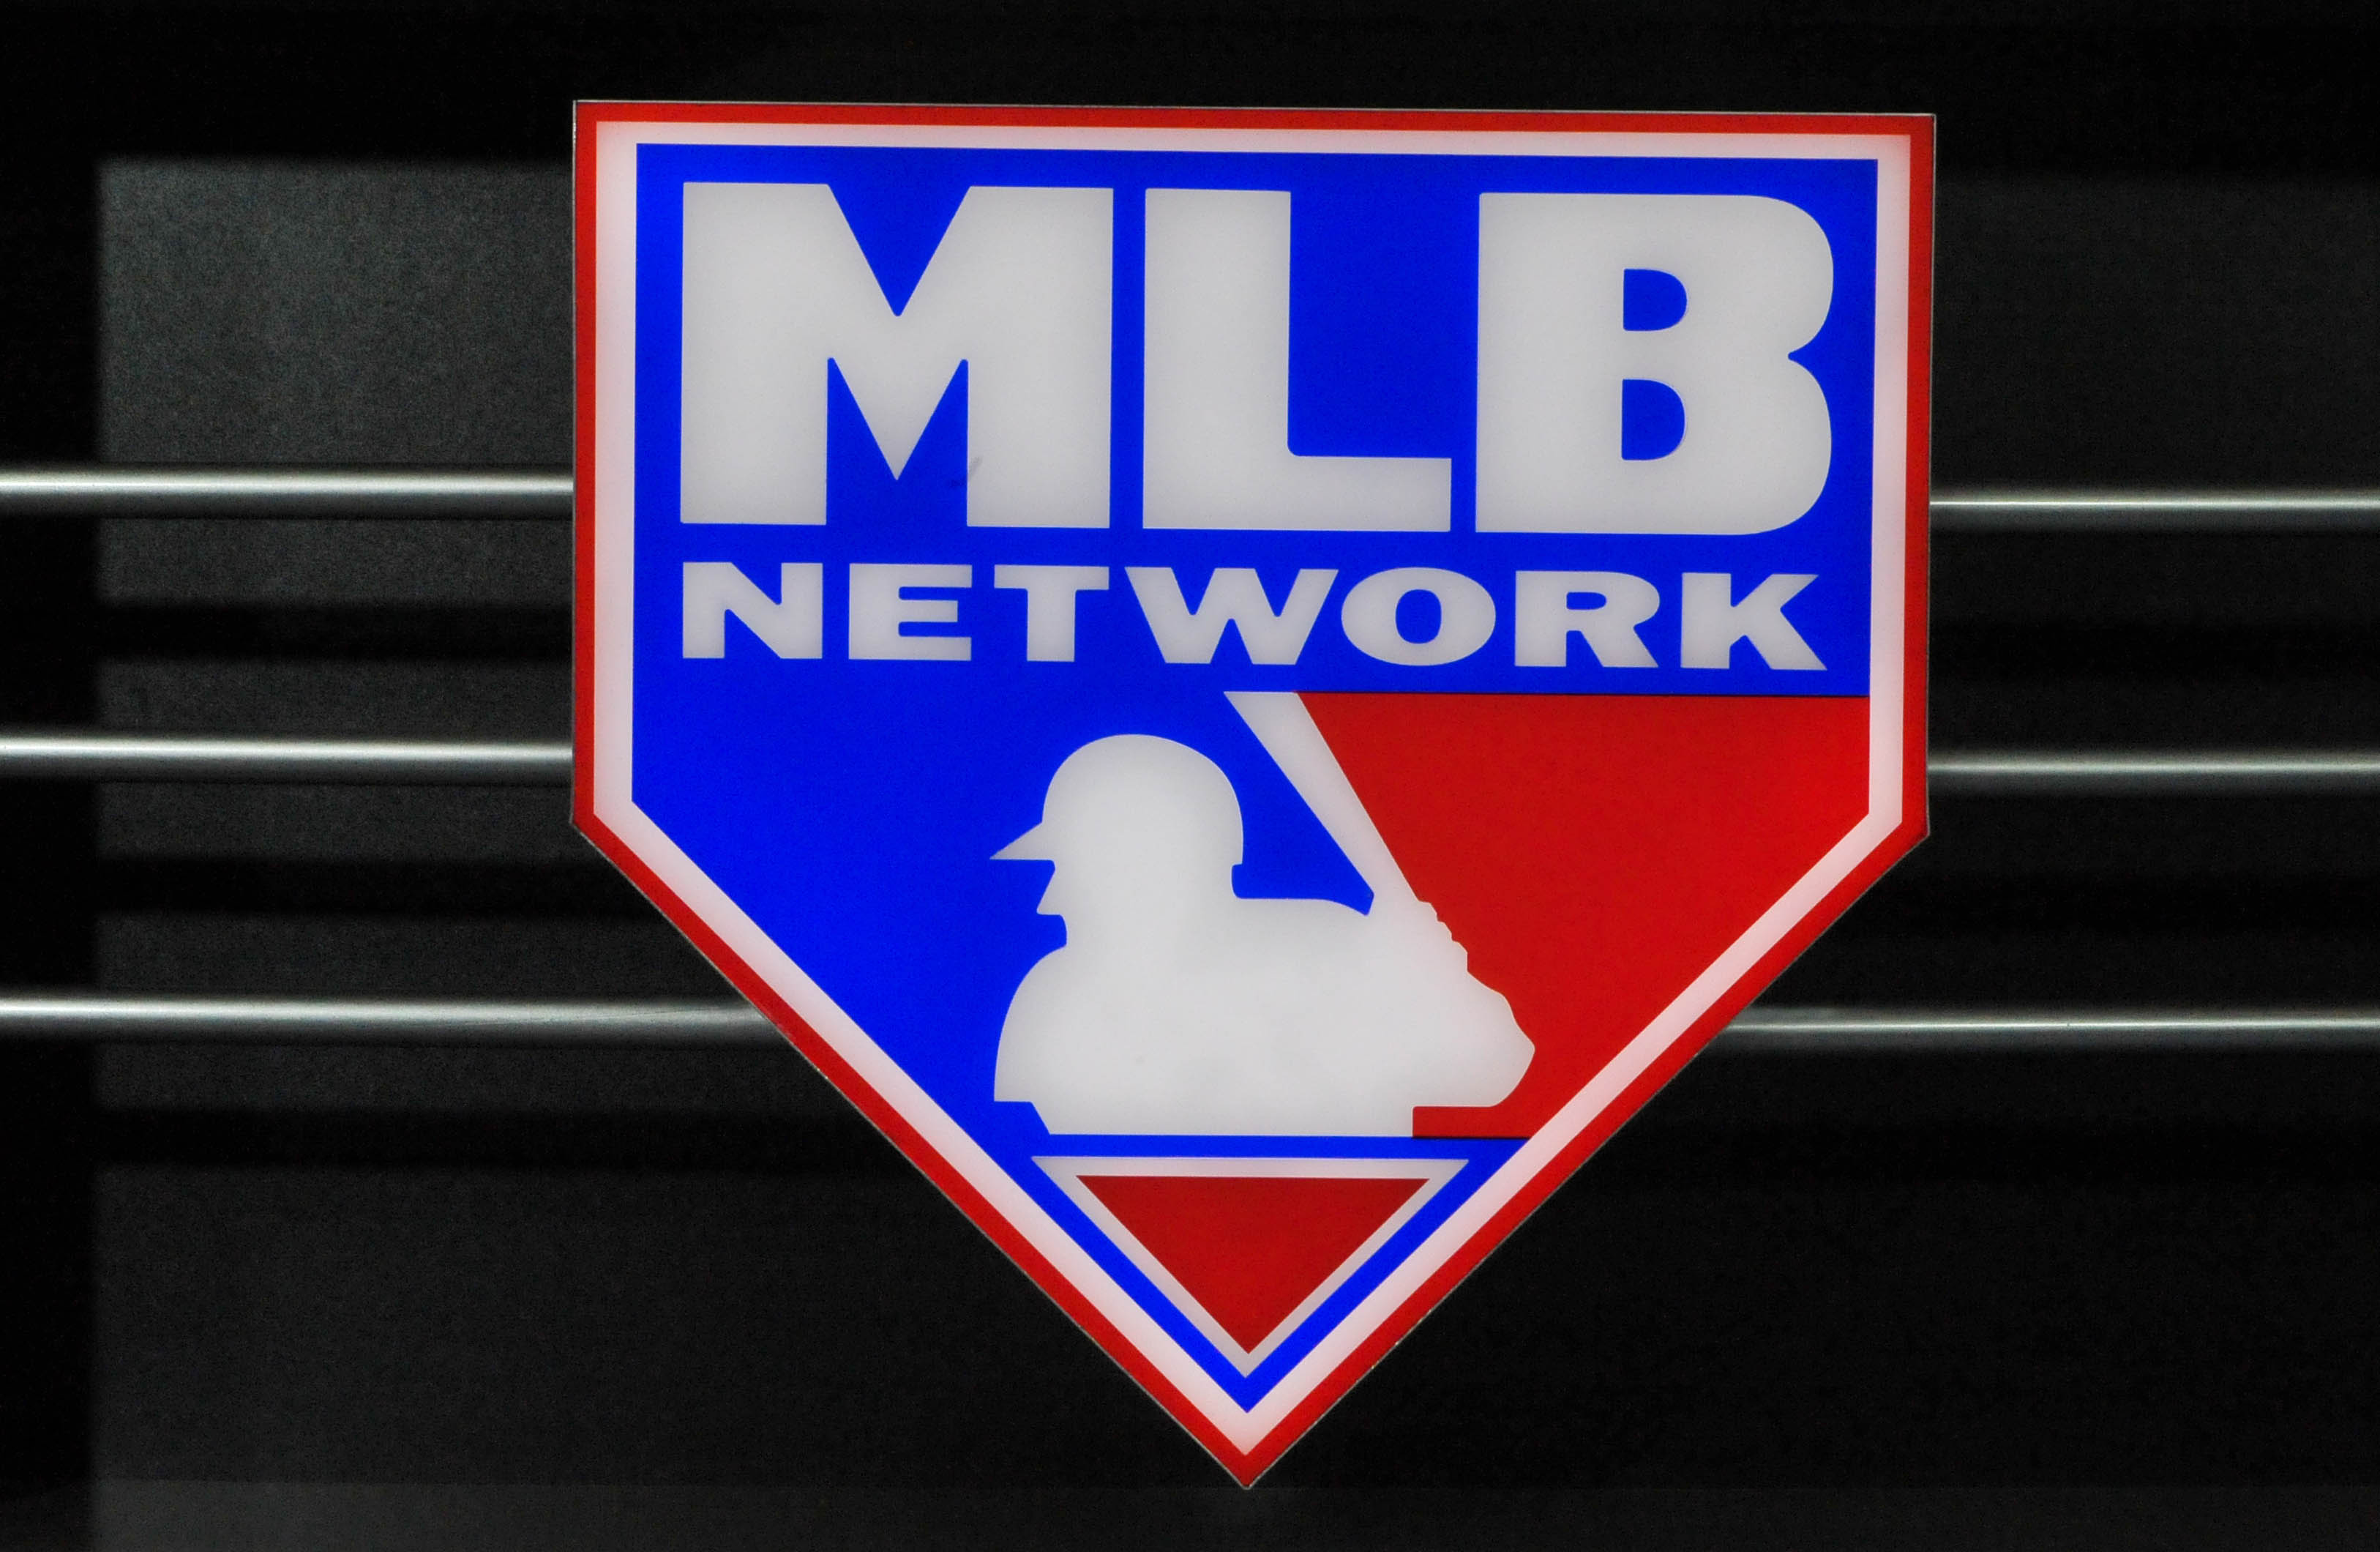 If you are a baseball fan, MLB Network is the place to watch for the next 4 days